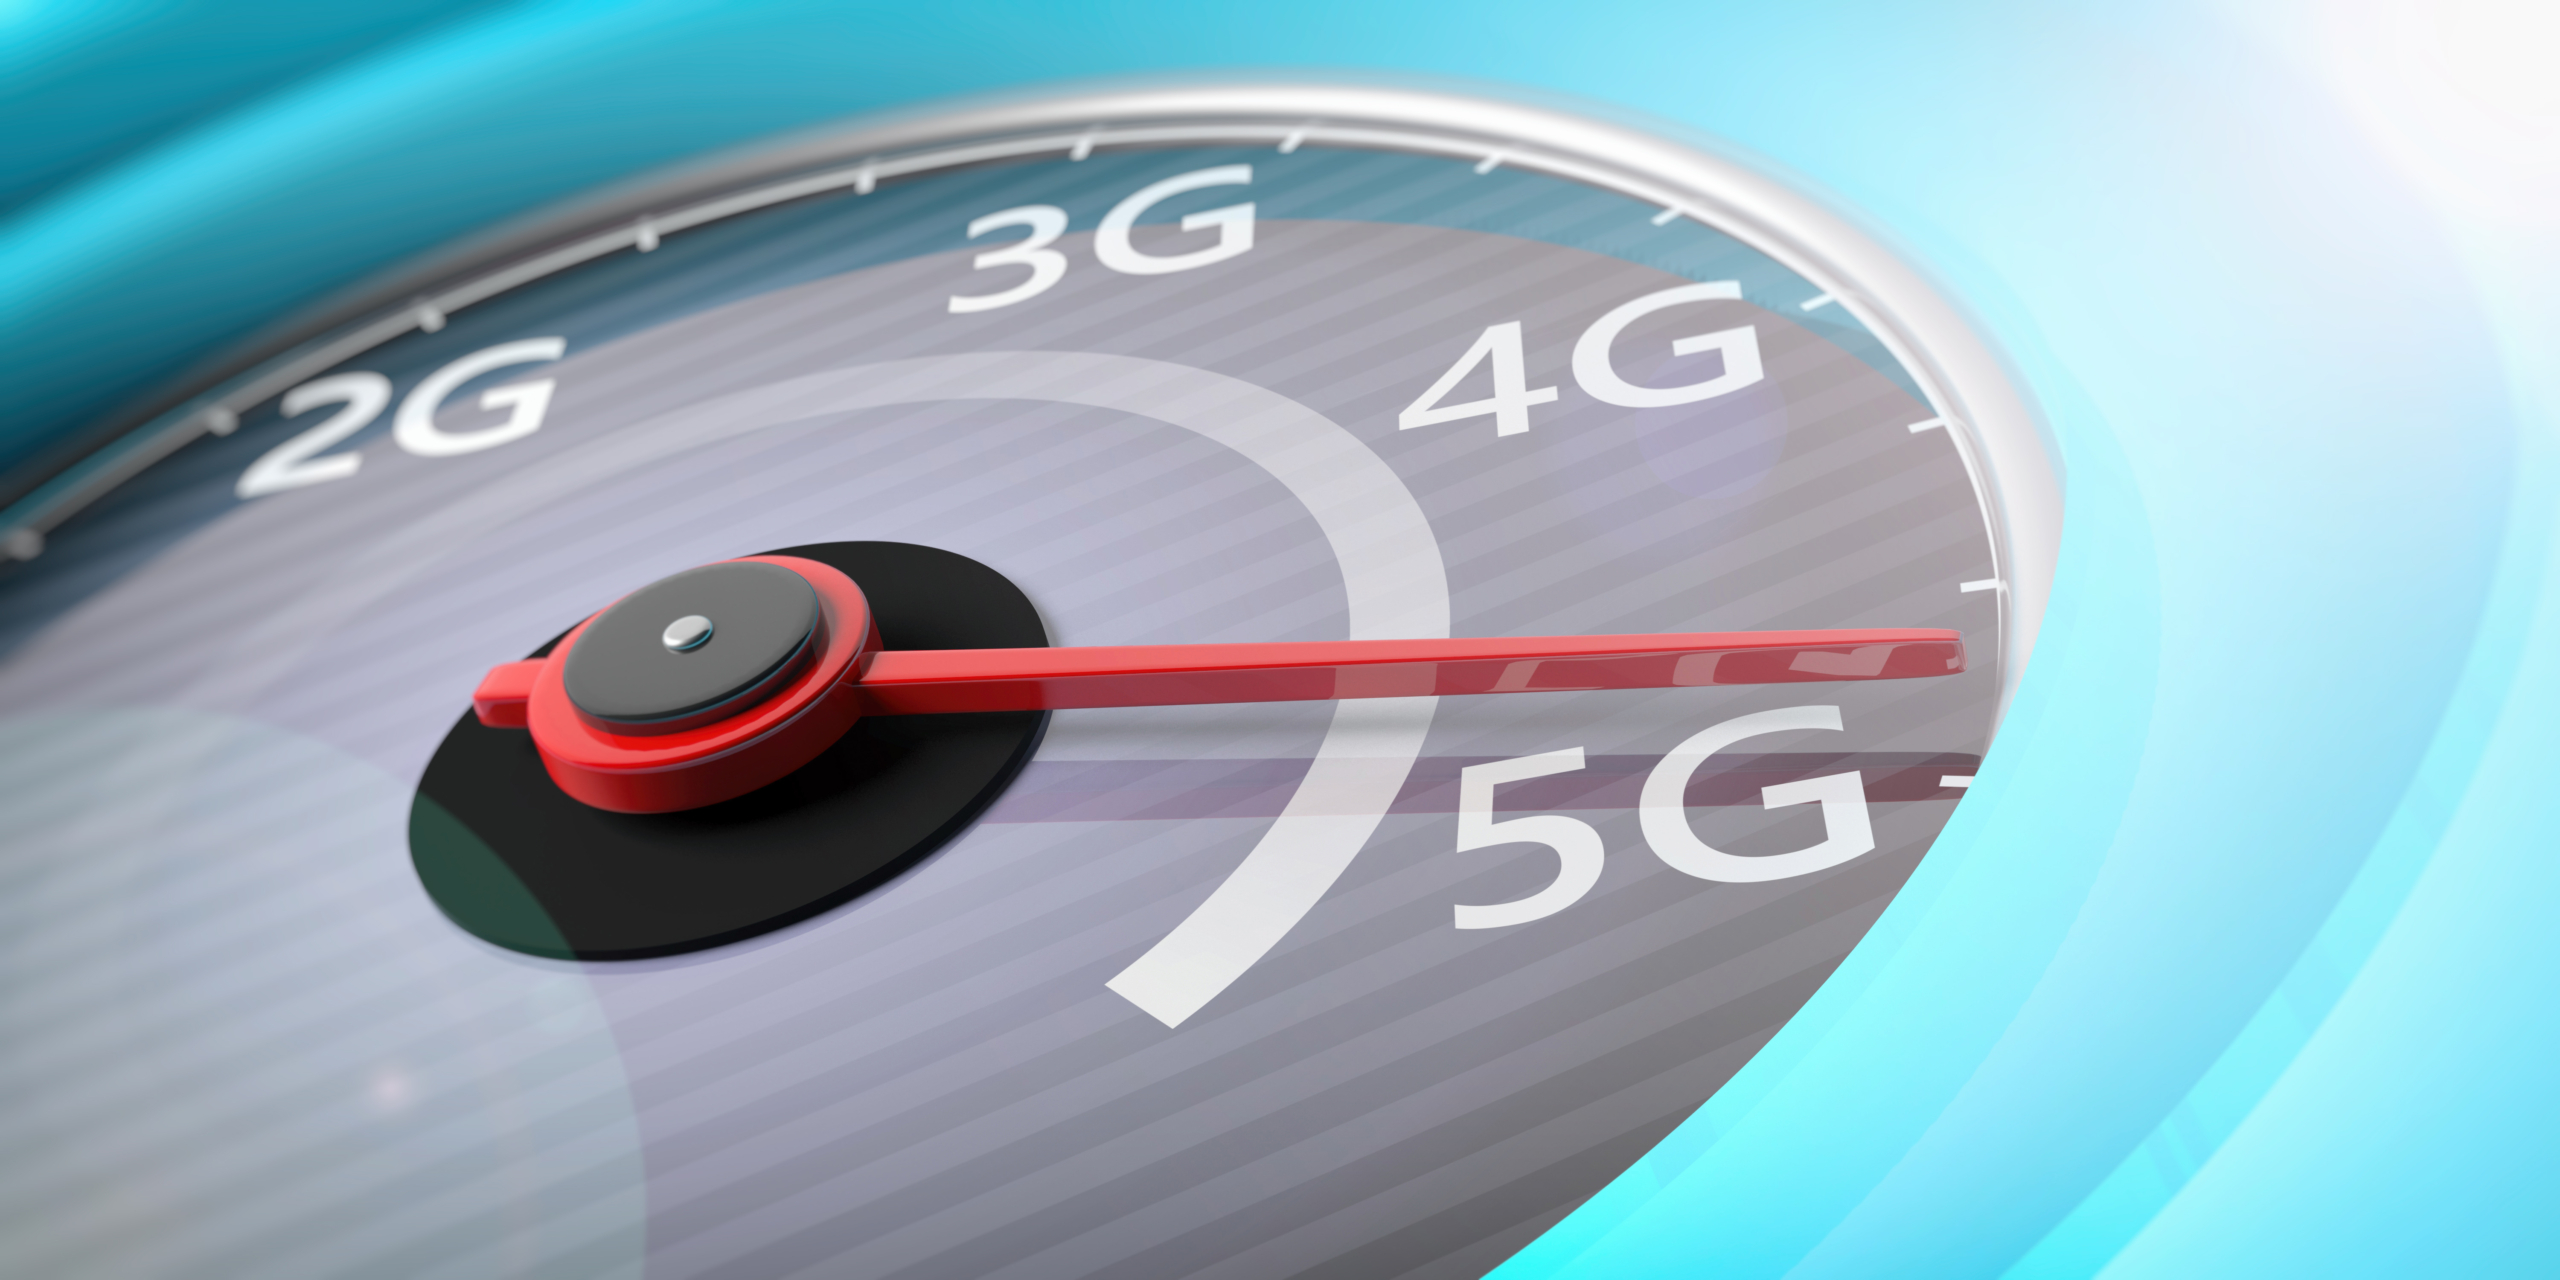 5G livestream speed of the internet connection